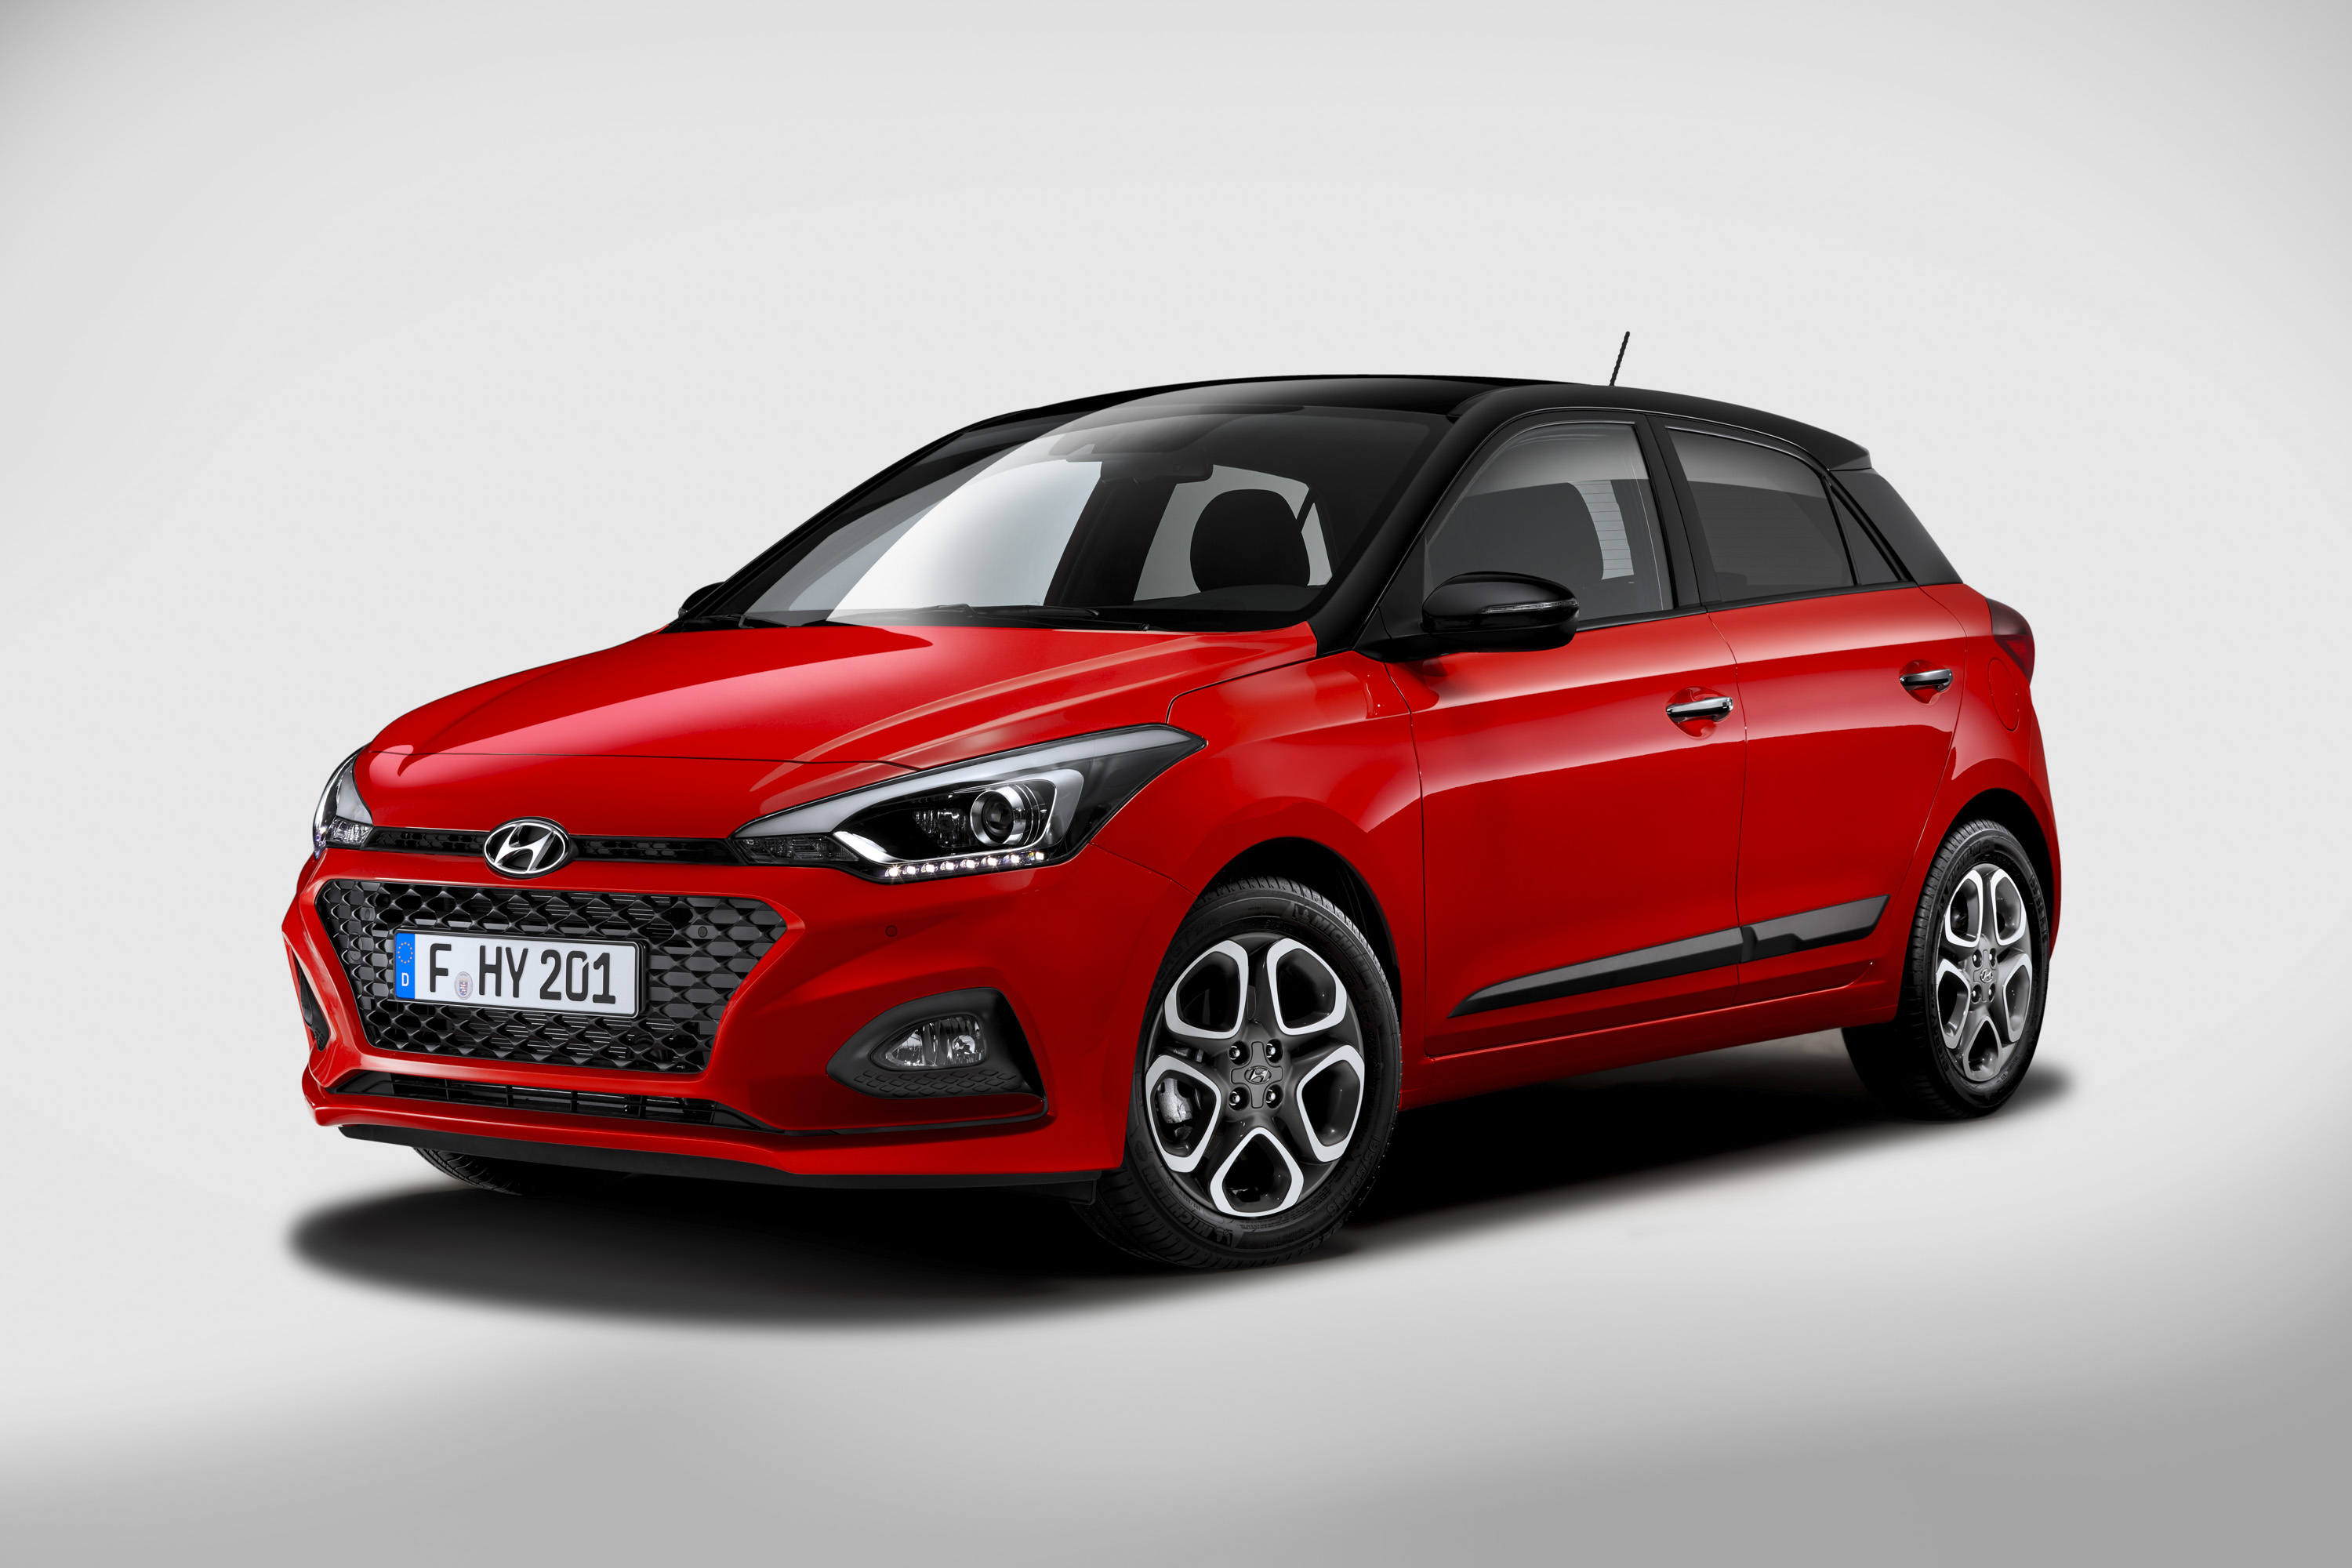 Hyundai I20 Updated With Bold Design And New Tech Including Dual